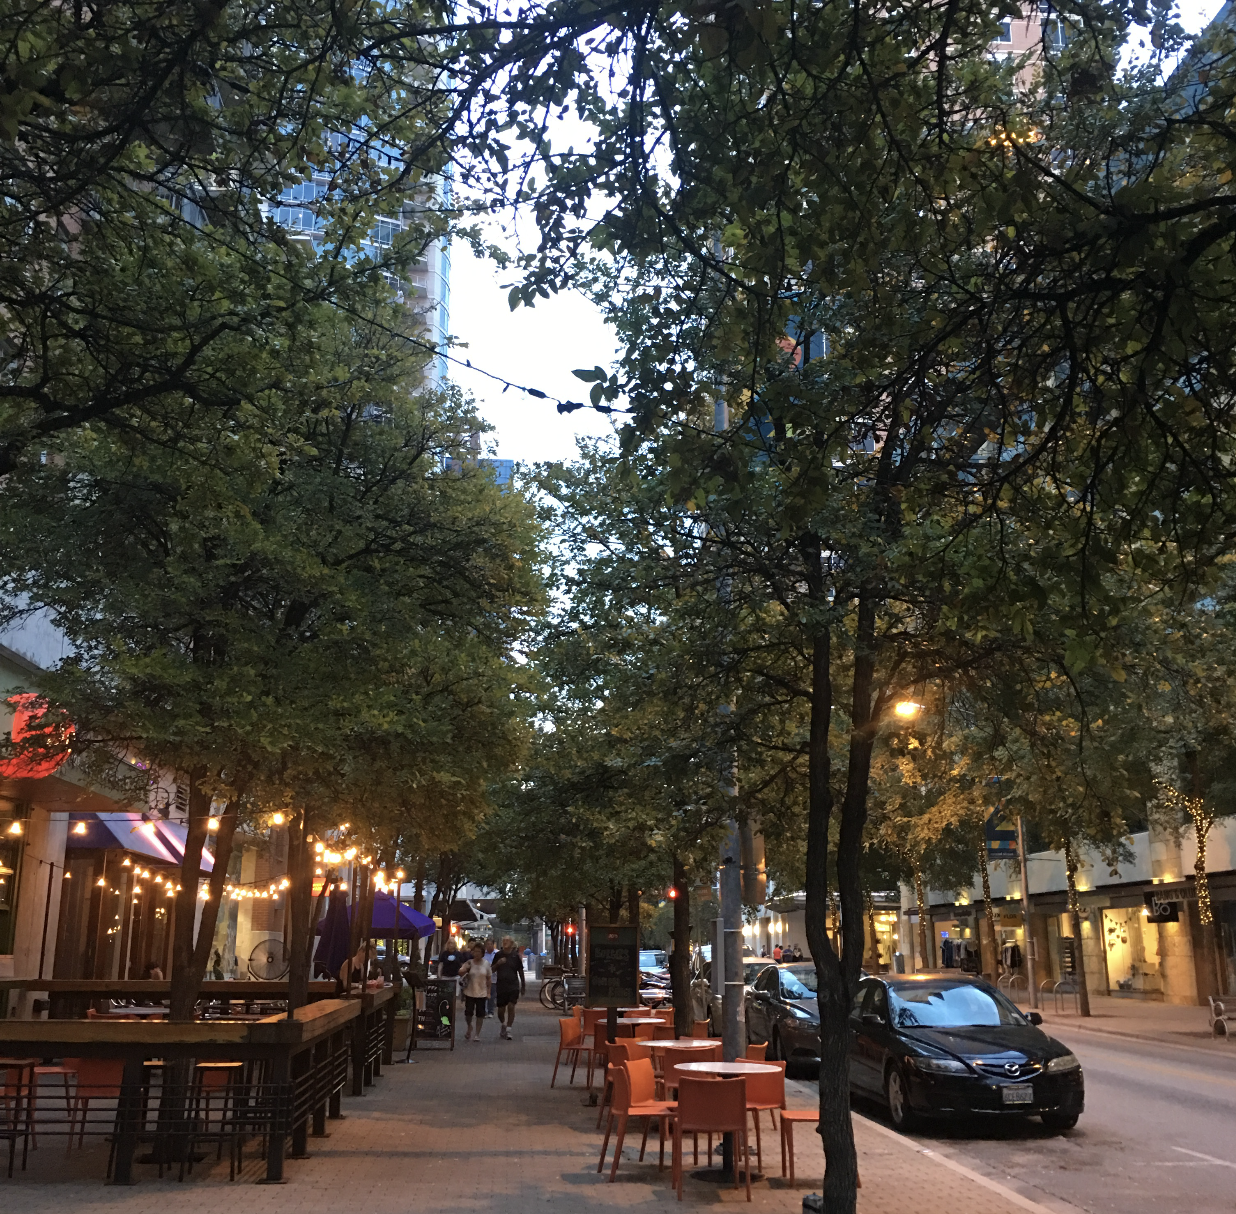 50 Fabulous Ways to Celebrate Your 50th Birthday in Austin, Texas